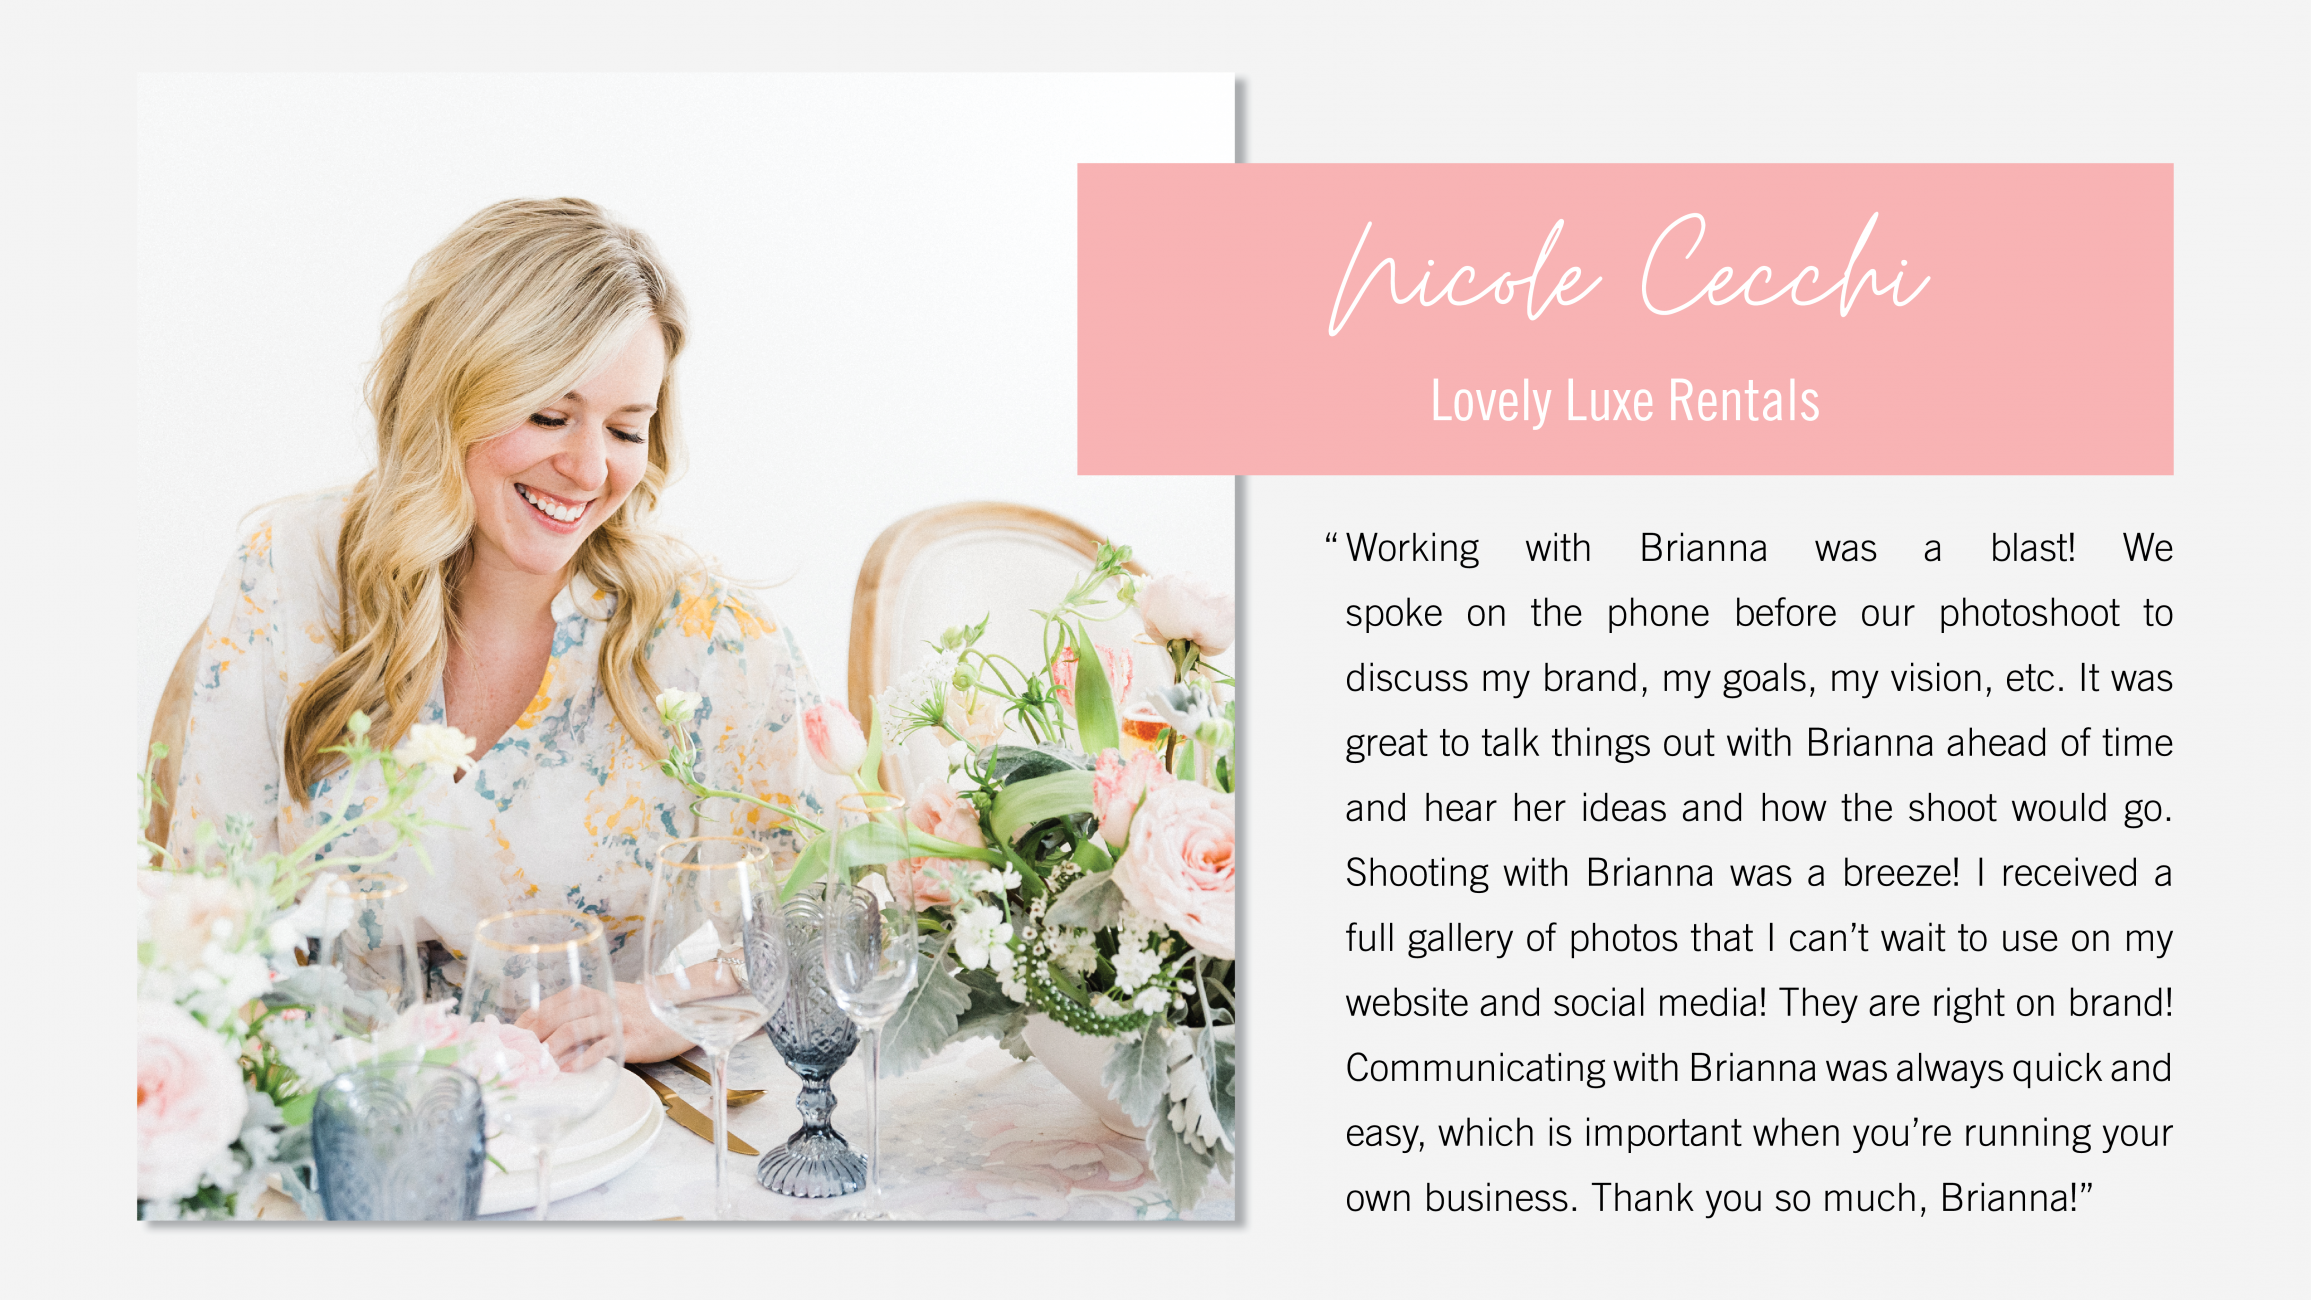 Testimonial from Nicole Cecchi Lovely Luxe Rentals